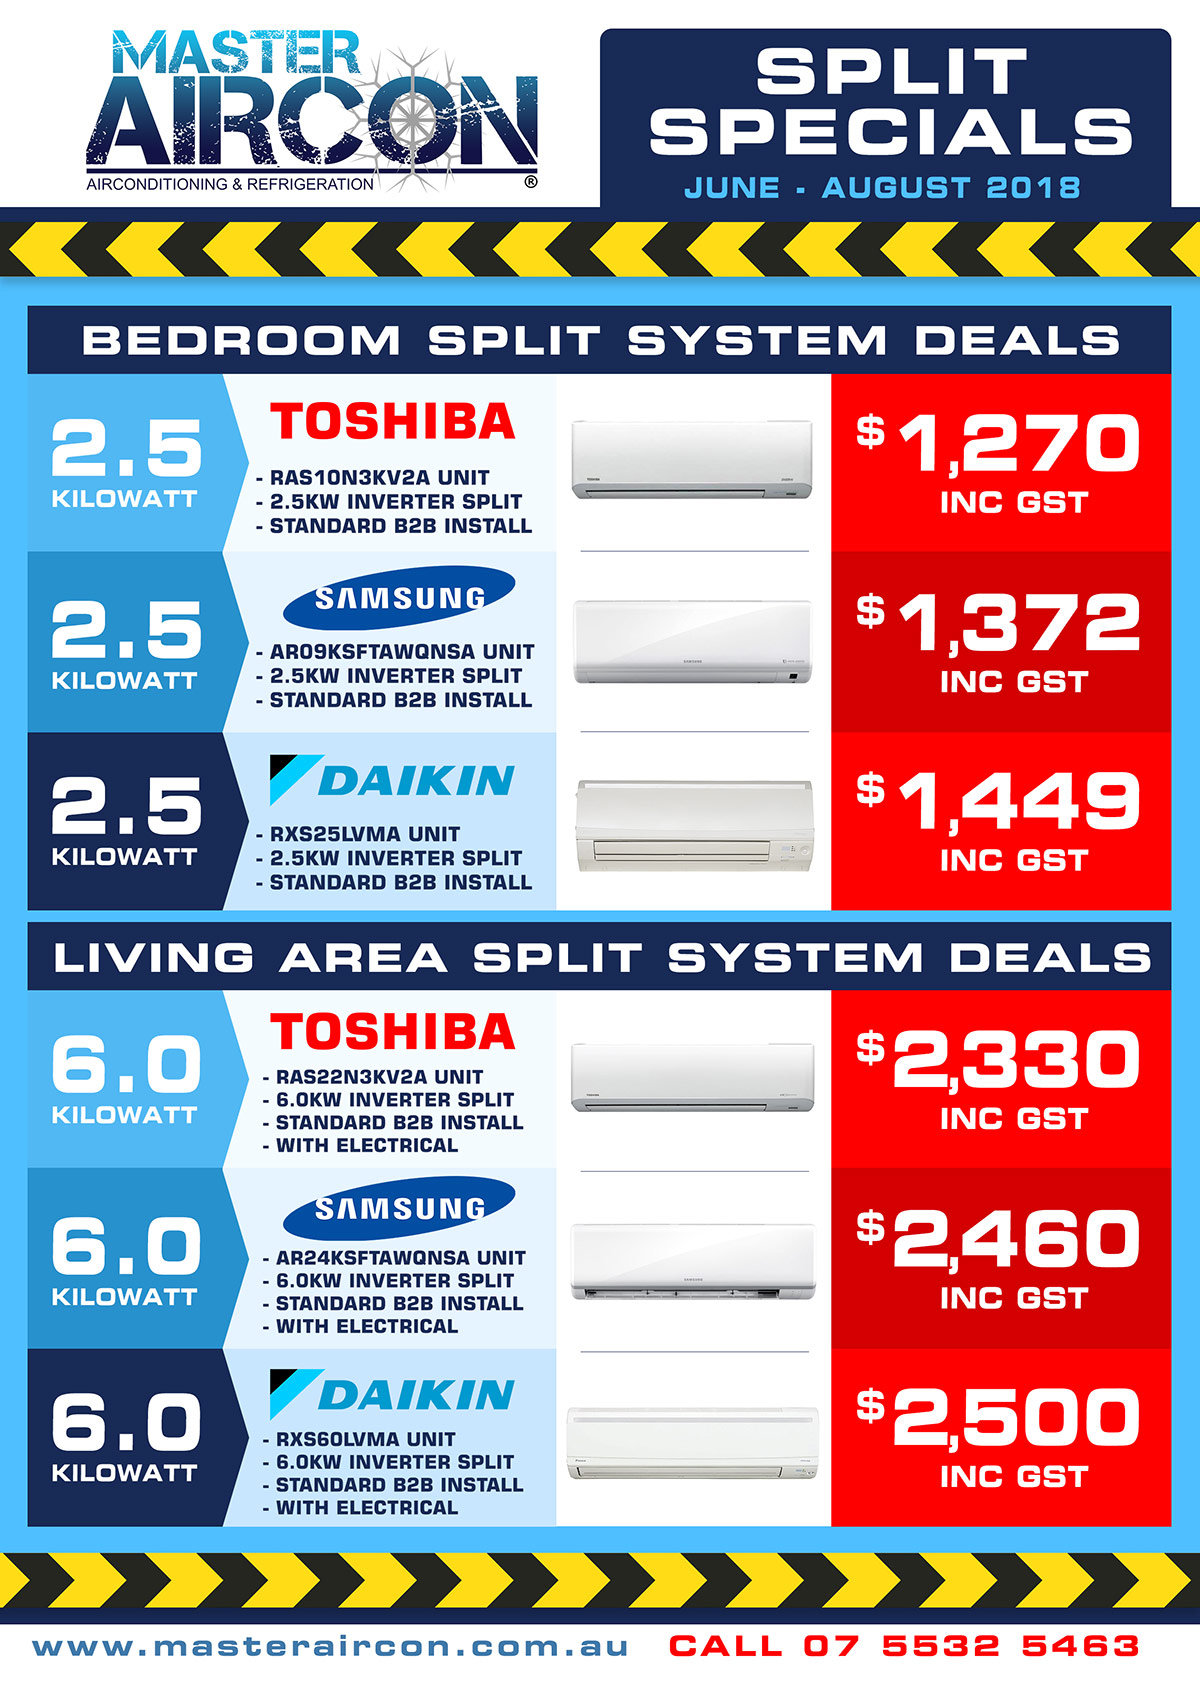 Air Conditioning Aircon Specials